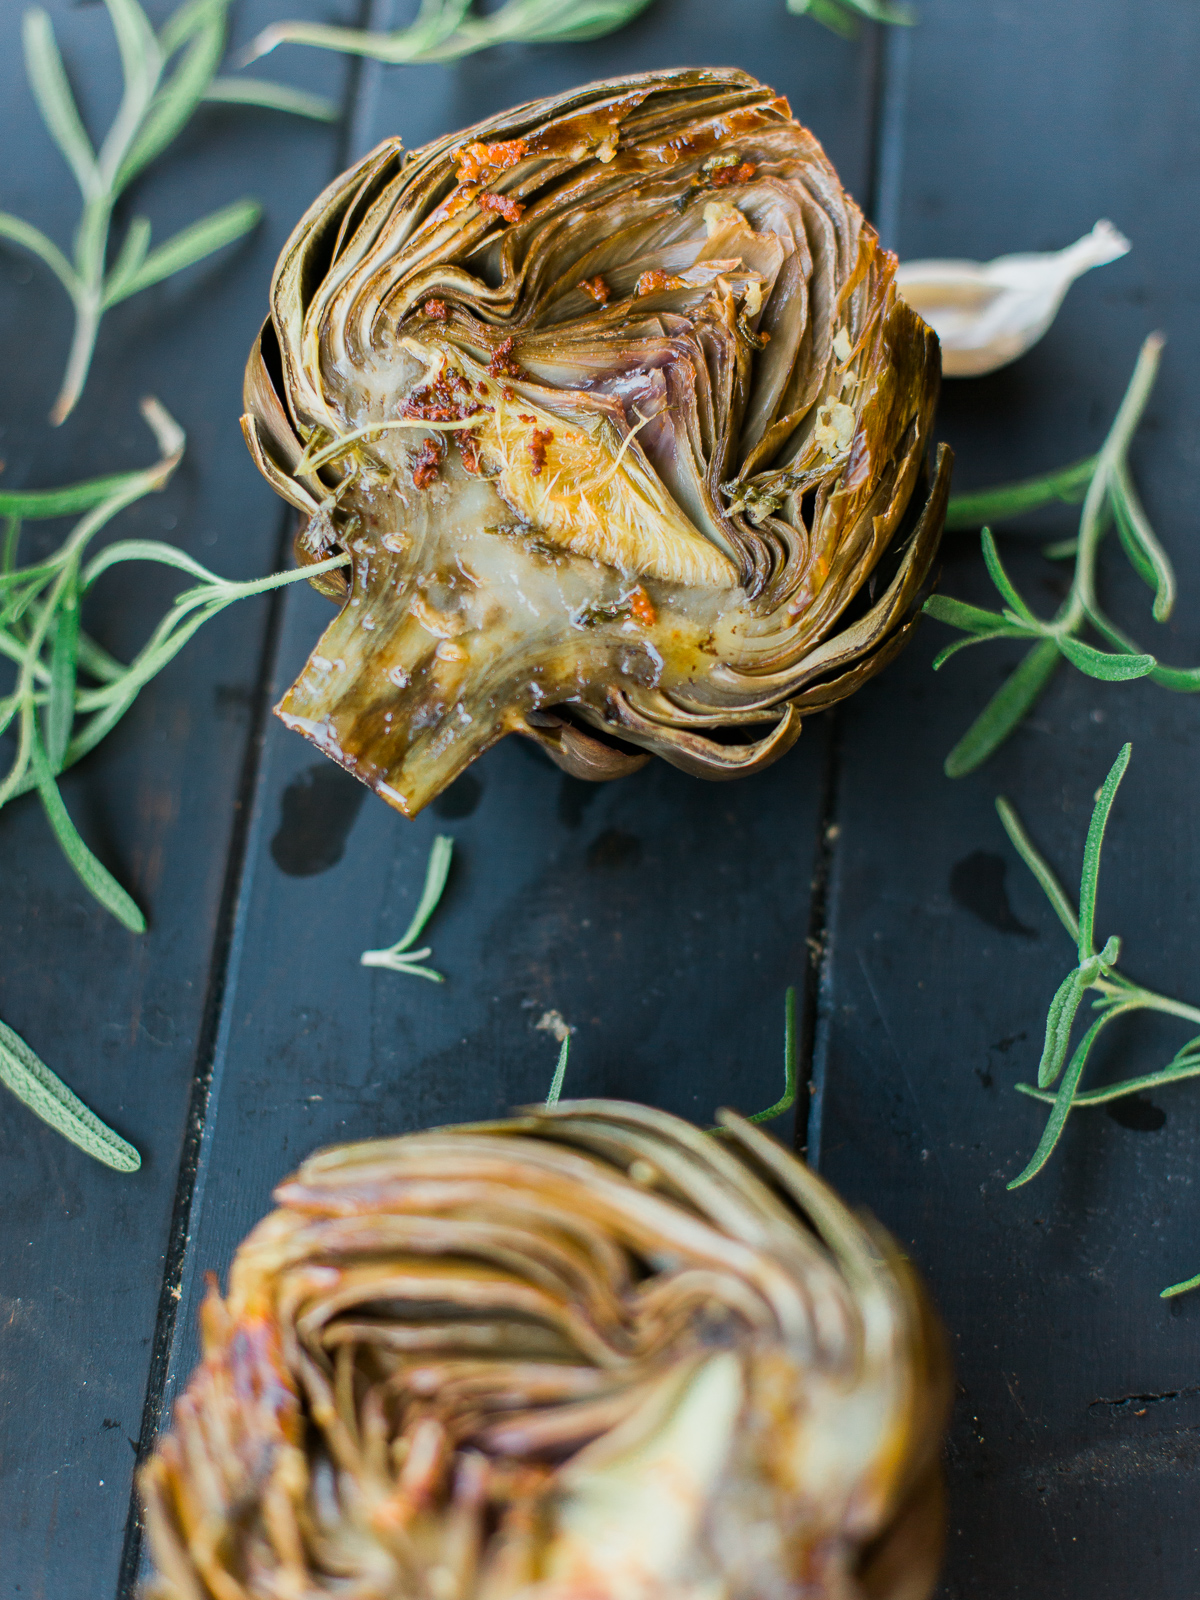 Rosemary Garlic Butter Roasted Artichoke Recipe  photo & recipe courtesy of Dad with a Pan